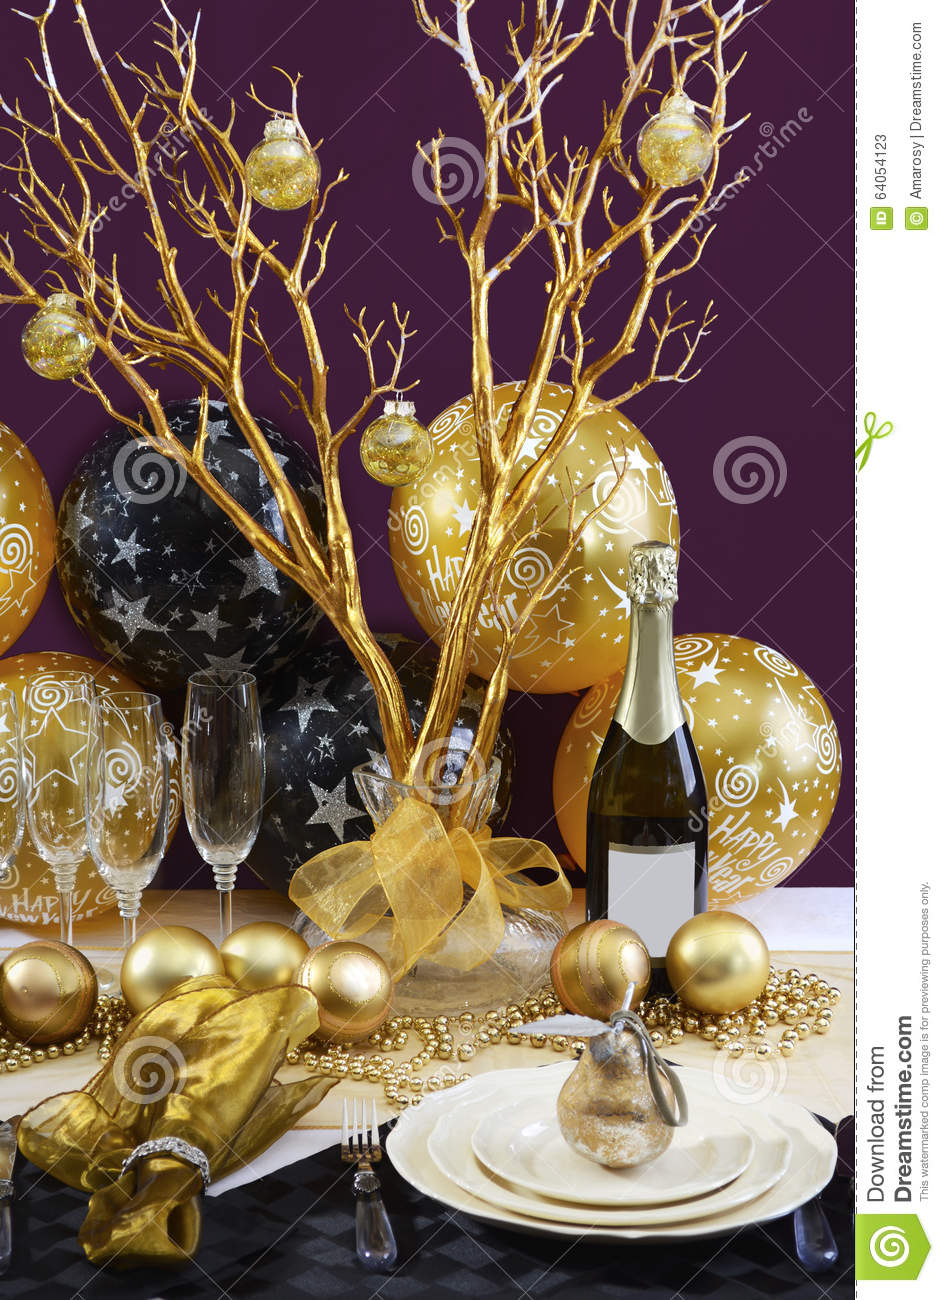 Royalty-Free Stock Photo & New Years Eve Dinner Table Setting. Stock Image - Image of bright ...